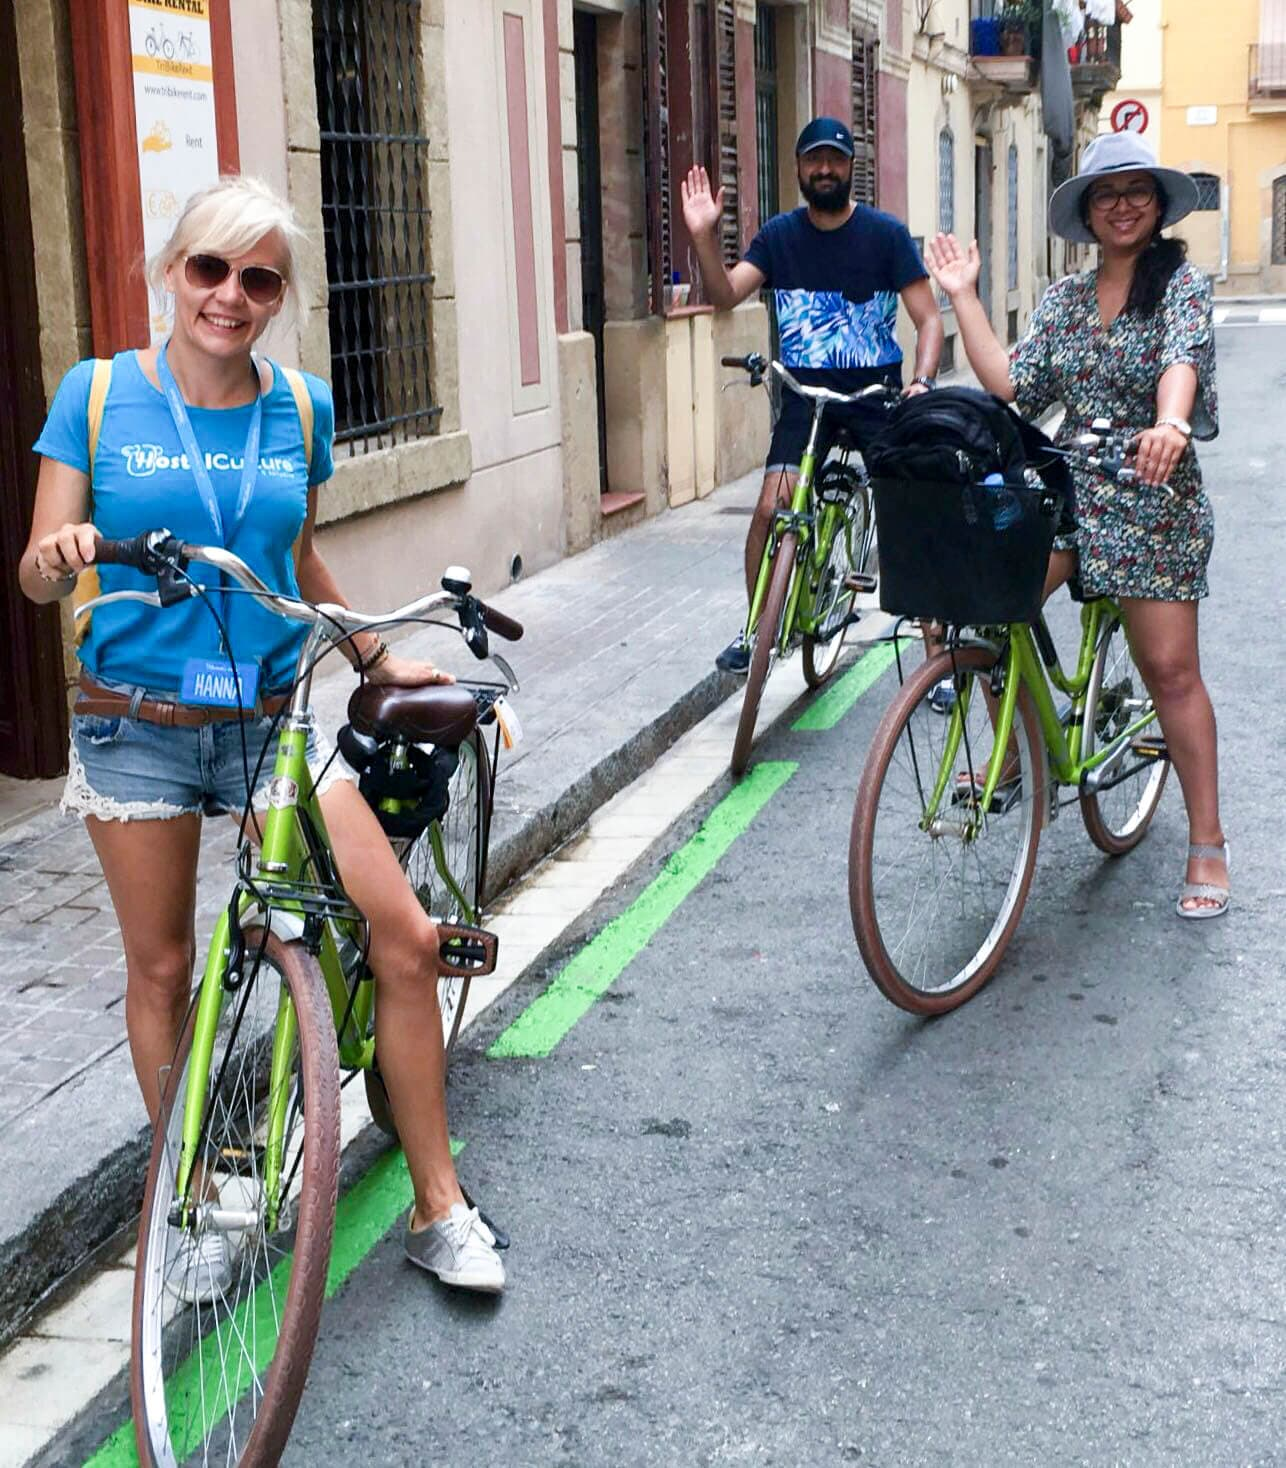 Guide and participants of Barcelona bike tour